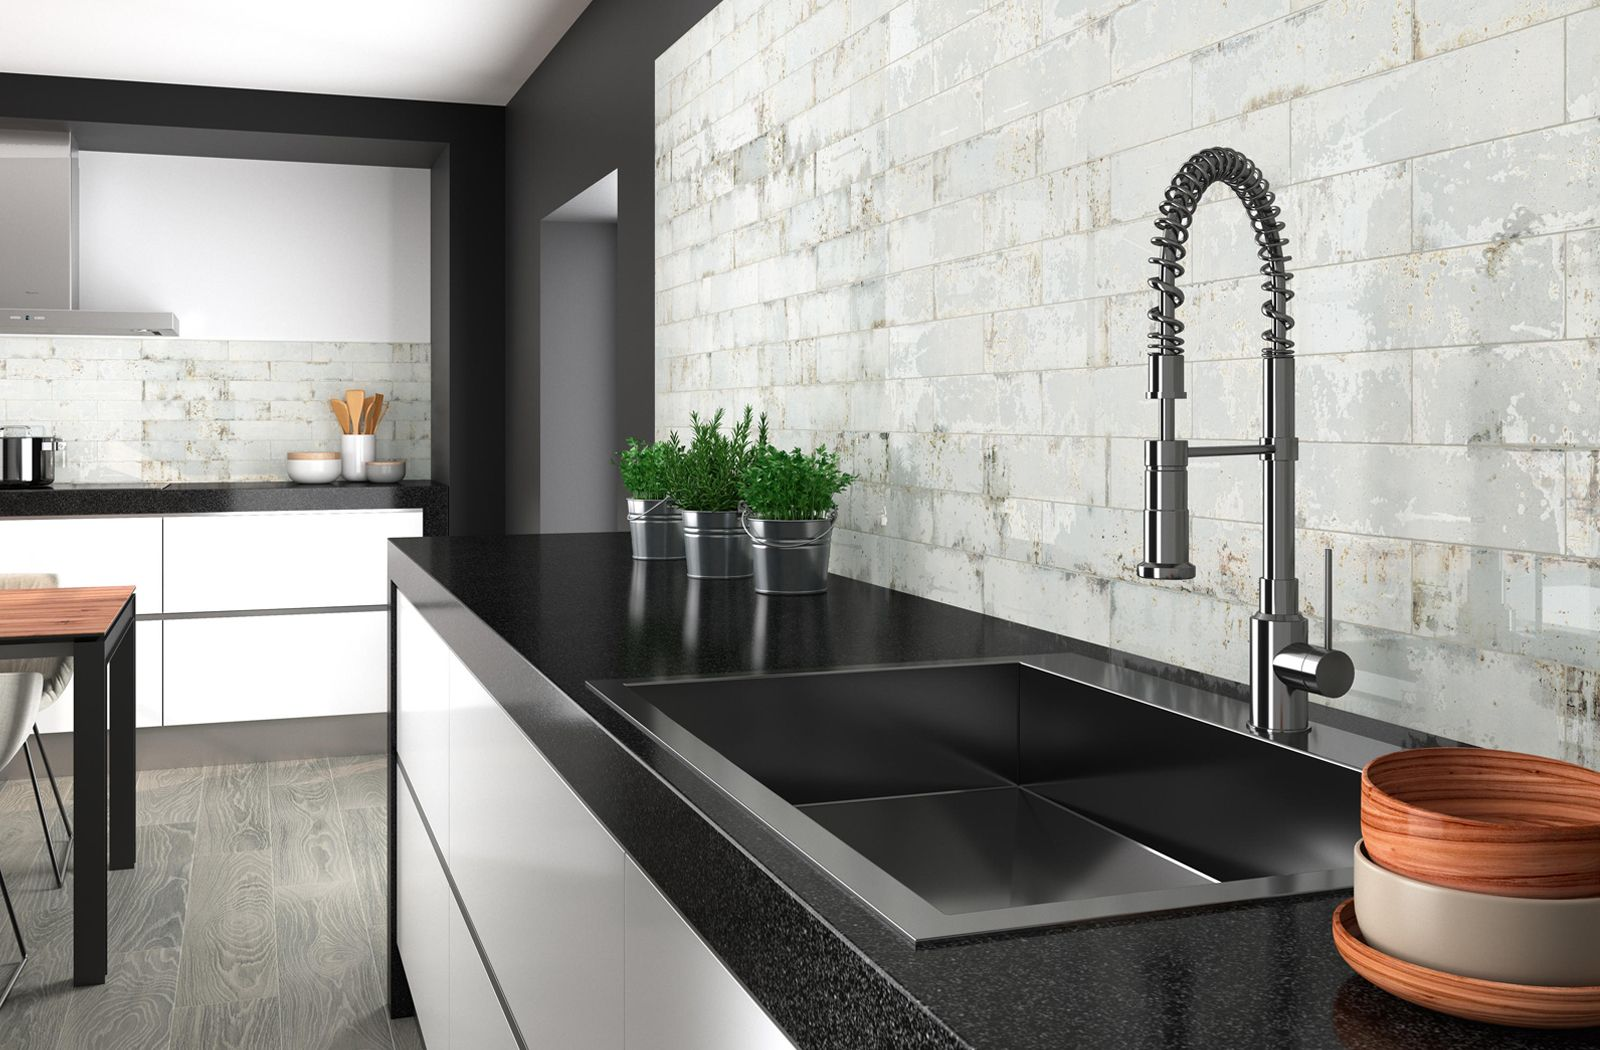 Modern industrial kitchen with grunge wall tiles from carmen modern industrial kitchen with grunge wall tiles from carmen ceramic art doublecrazyfo Choice Image